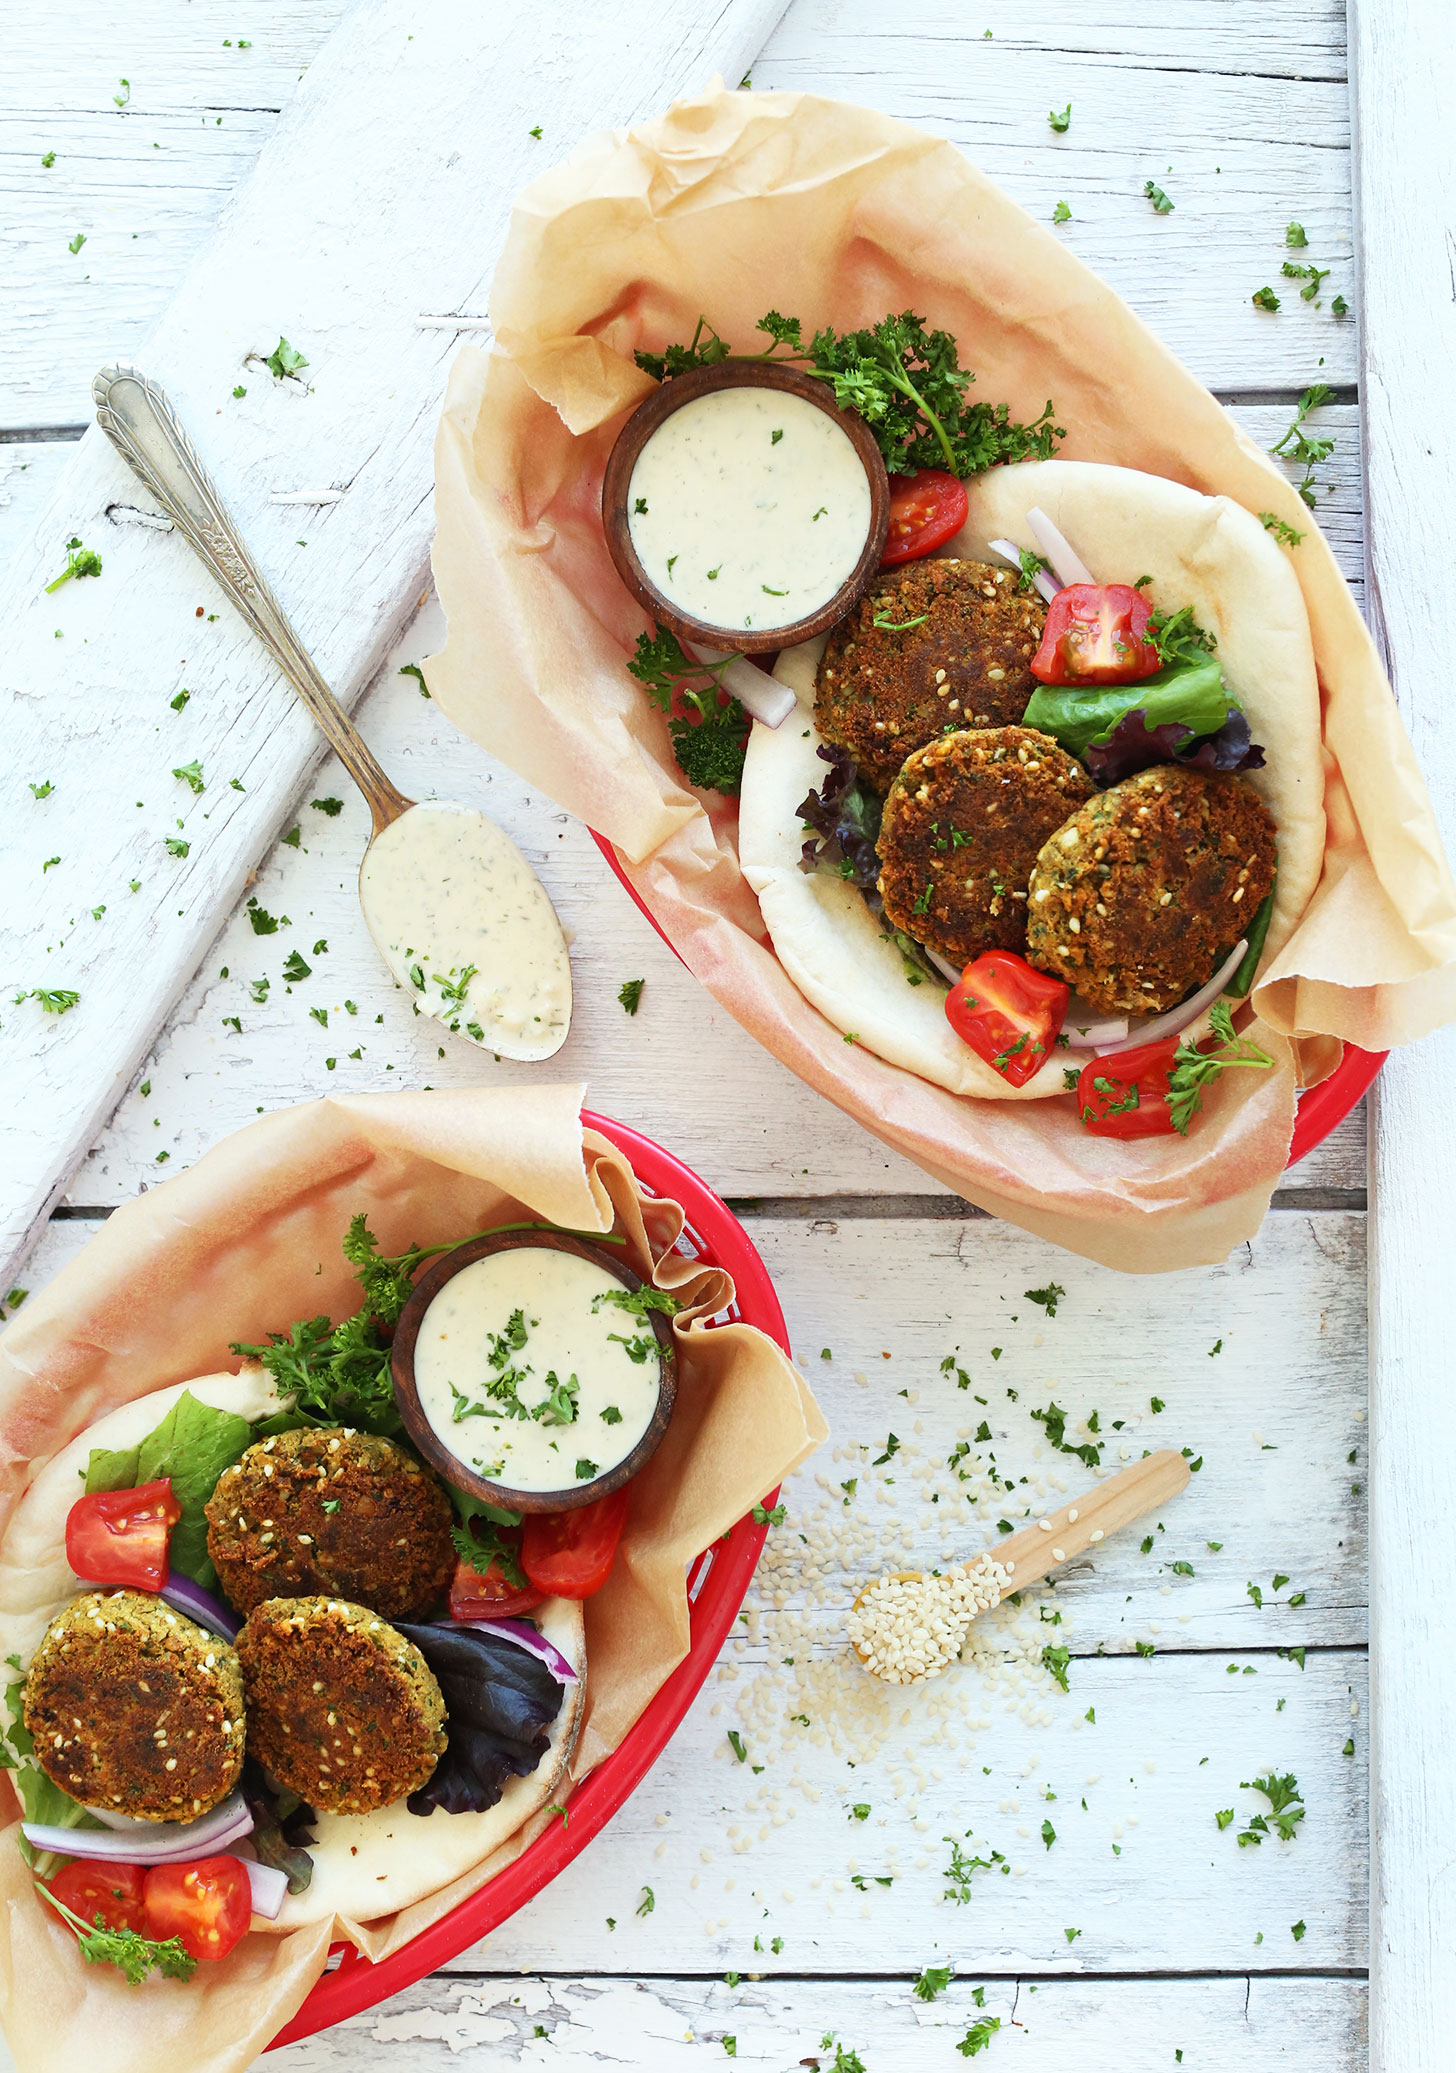 Serving containers filled with pita bread topped with homemade Simple Vegan Falafel